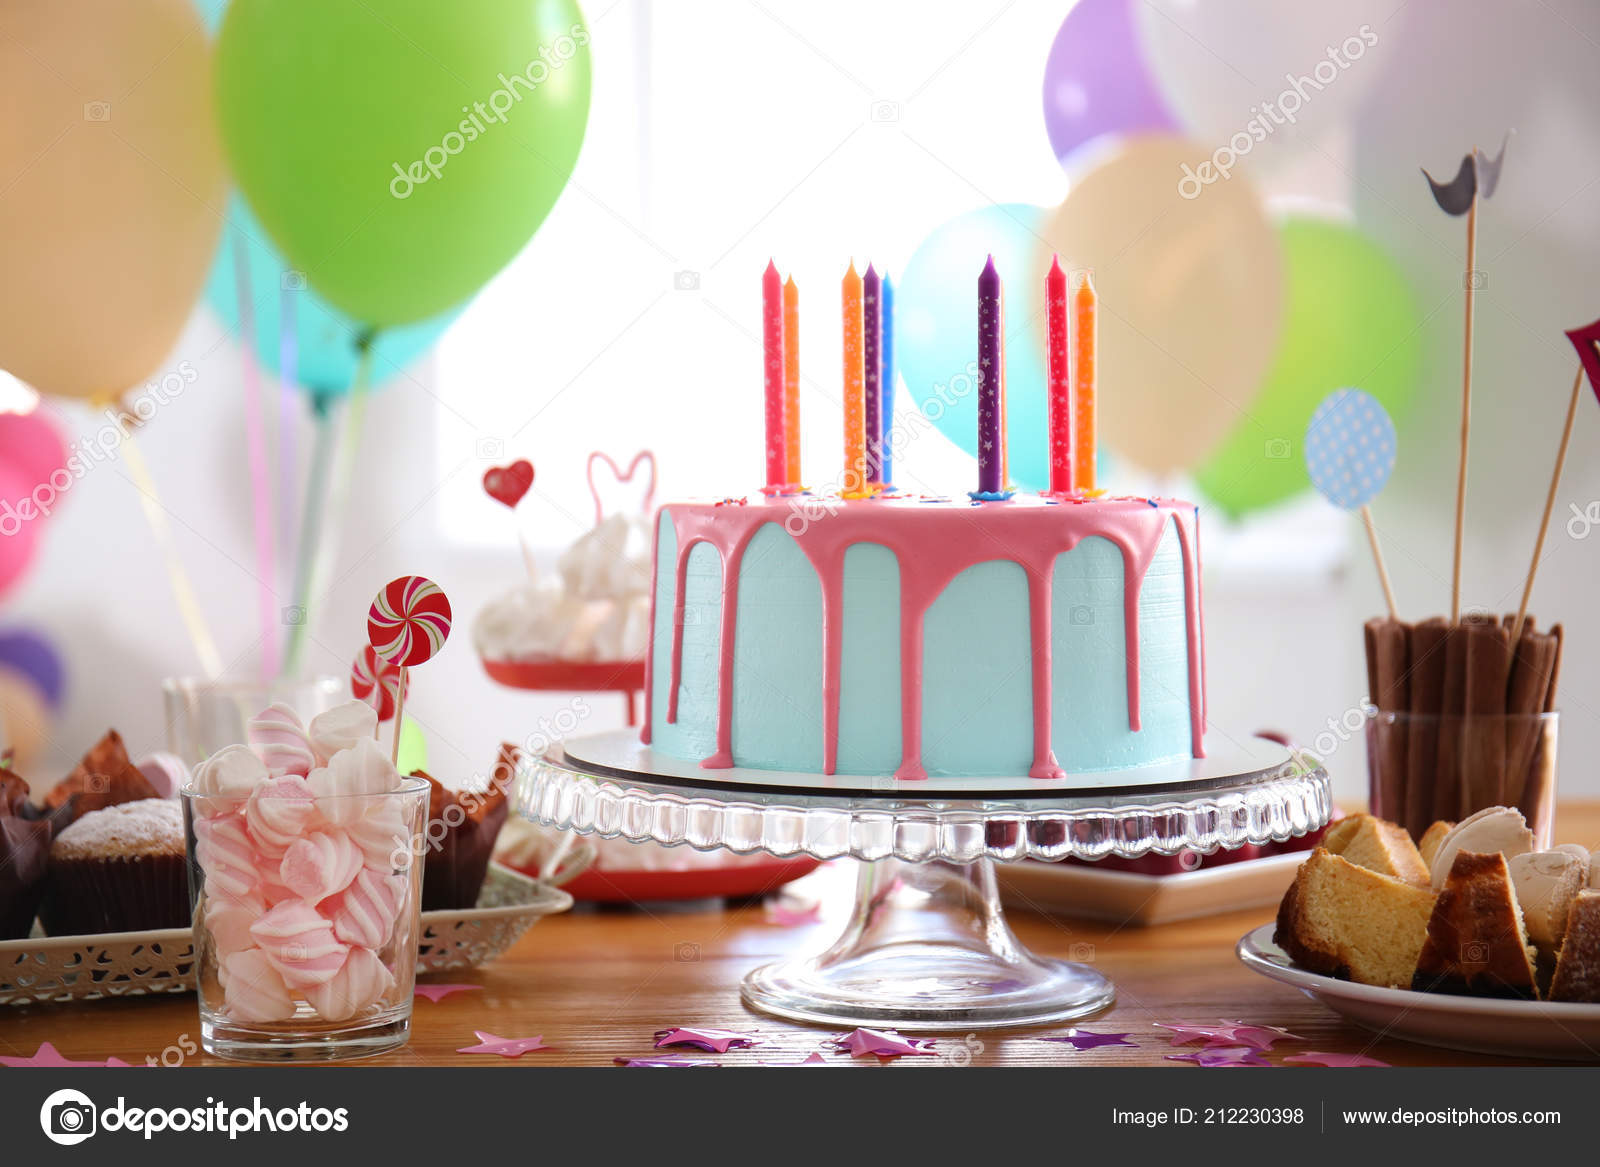 Beautiful Birthday Cake Candles Different Sweets Table Stock Image